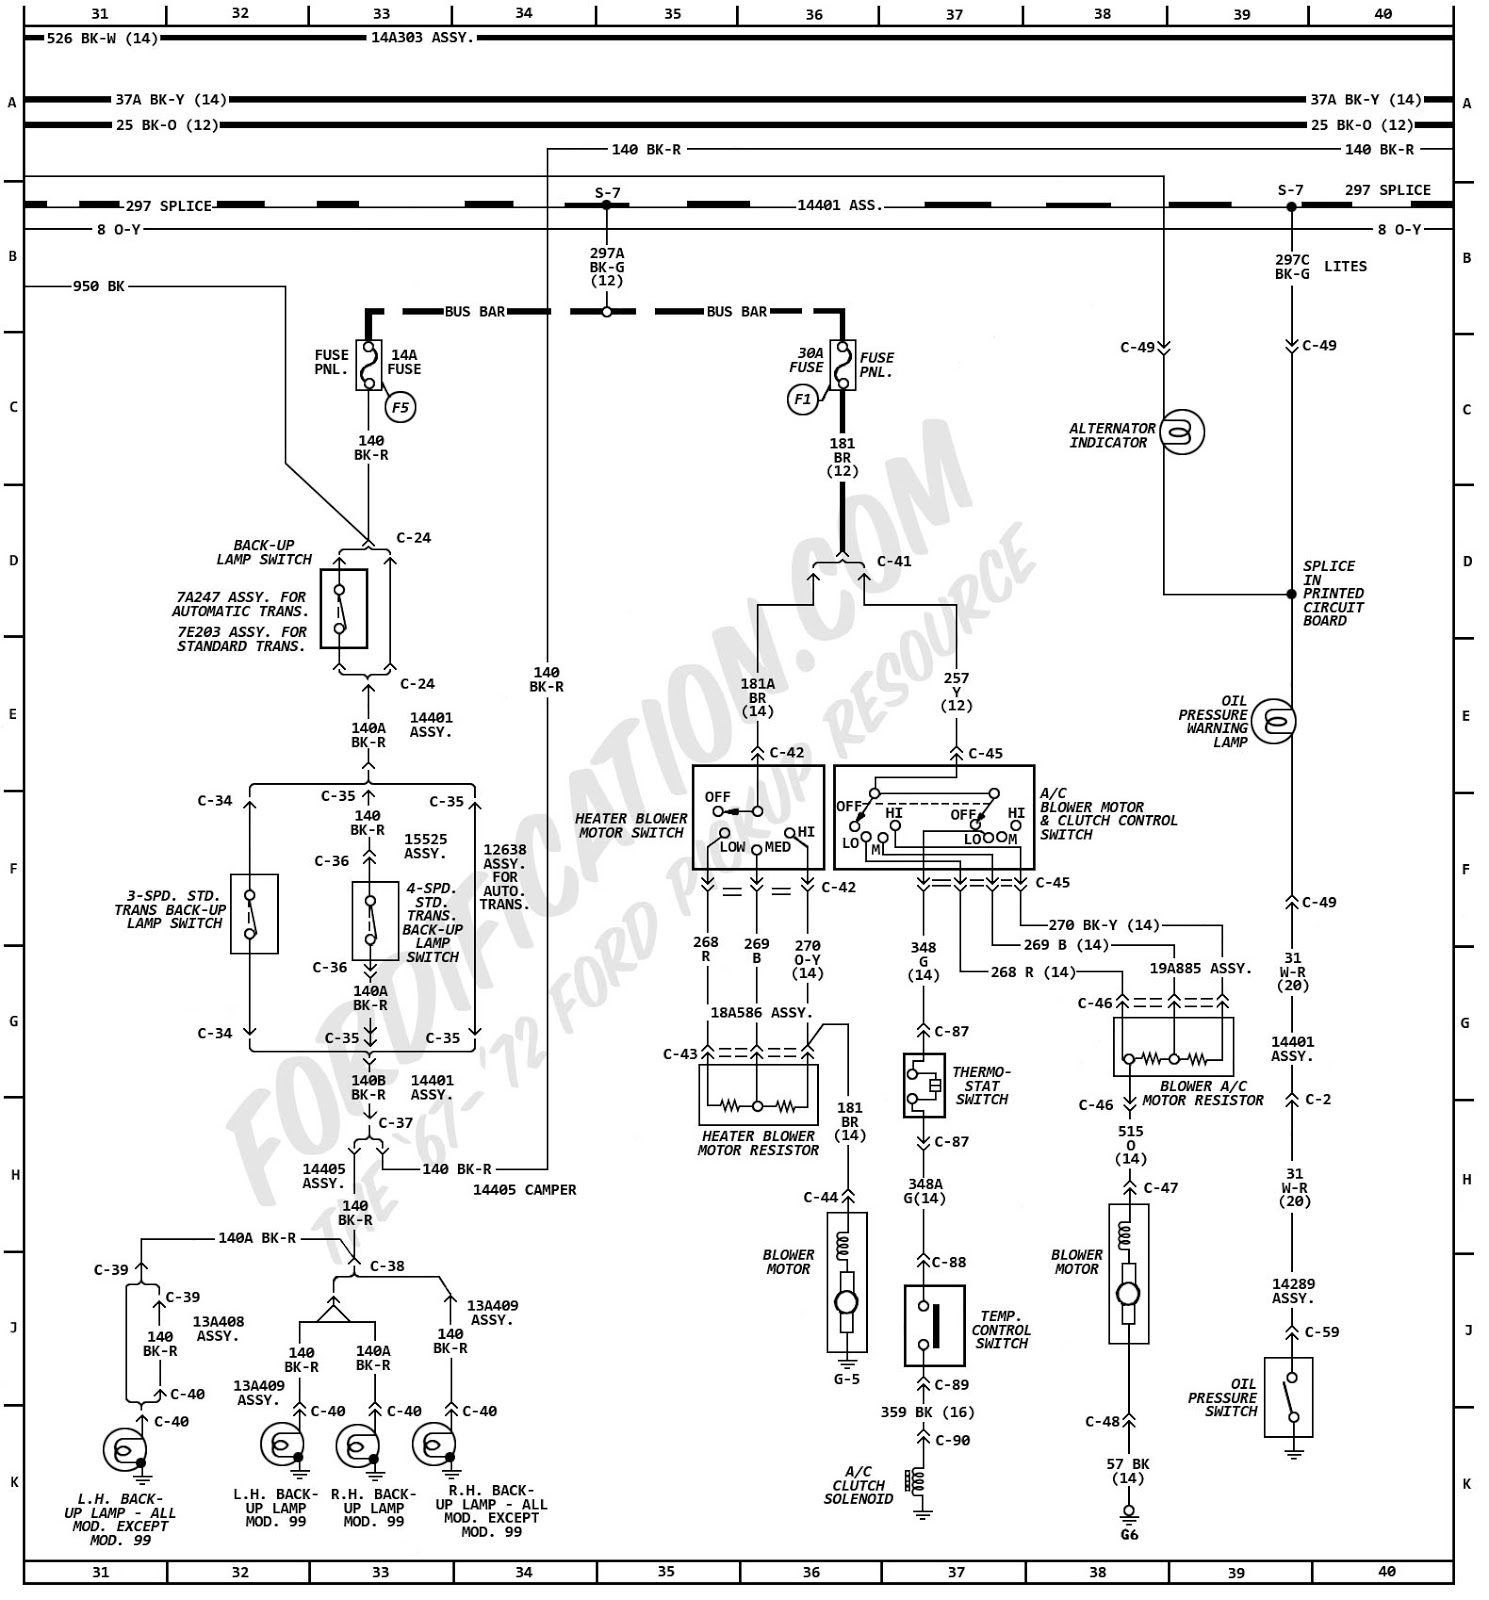 small resolution of chevy radio wire harness stereo connect wiring chv 1858 ebay wiring diagram for 2005 chevy aveo on 1858 metra gm wire harness